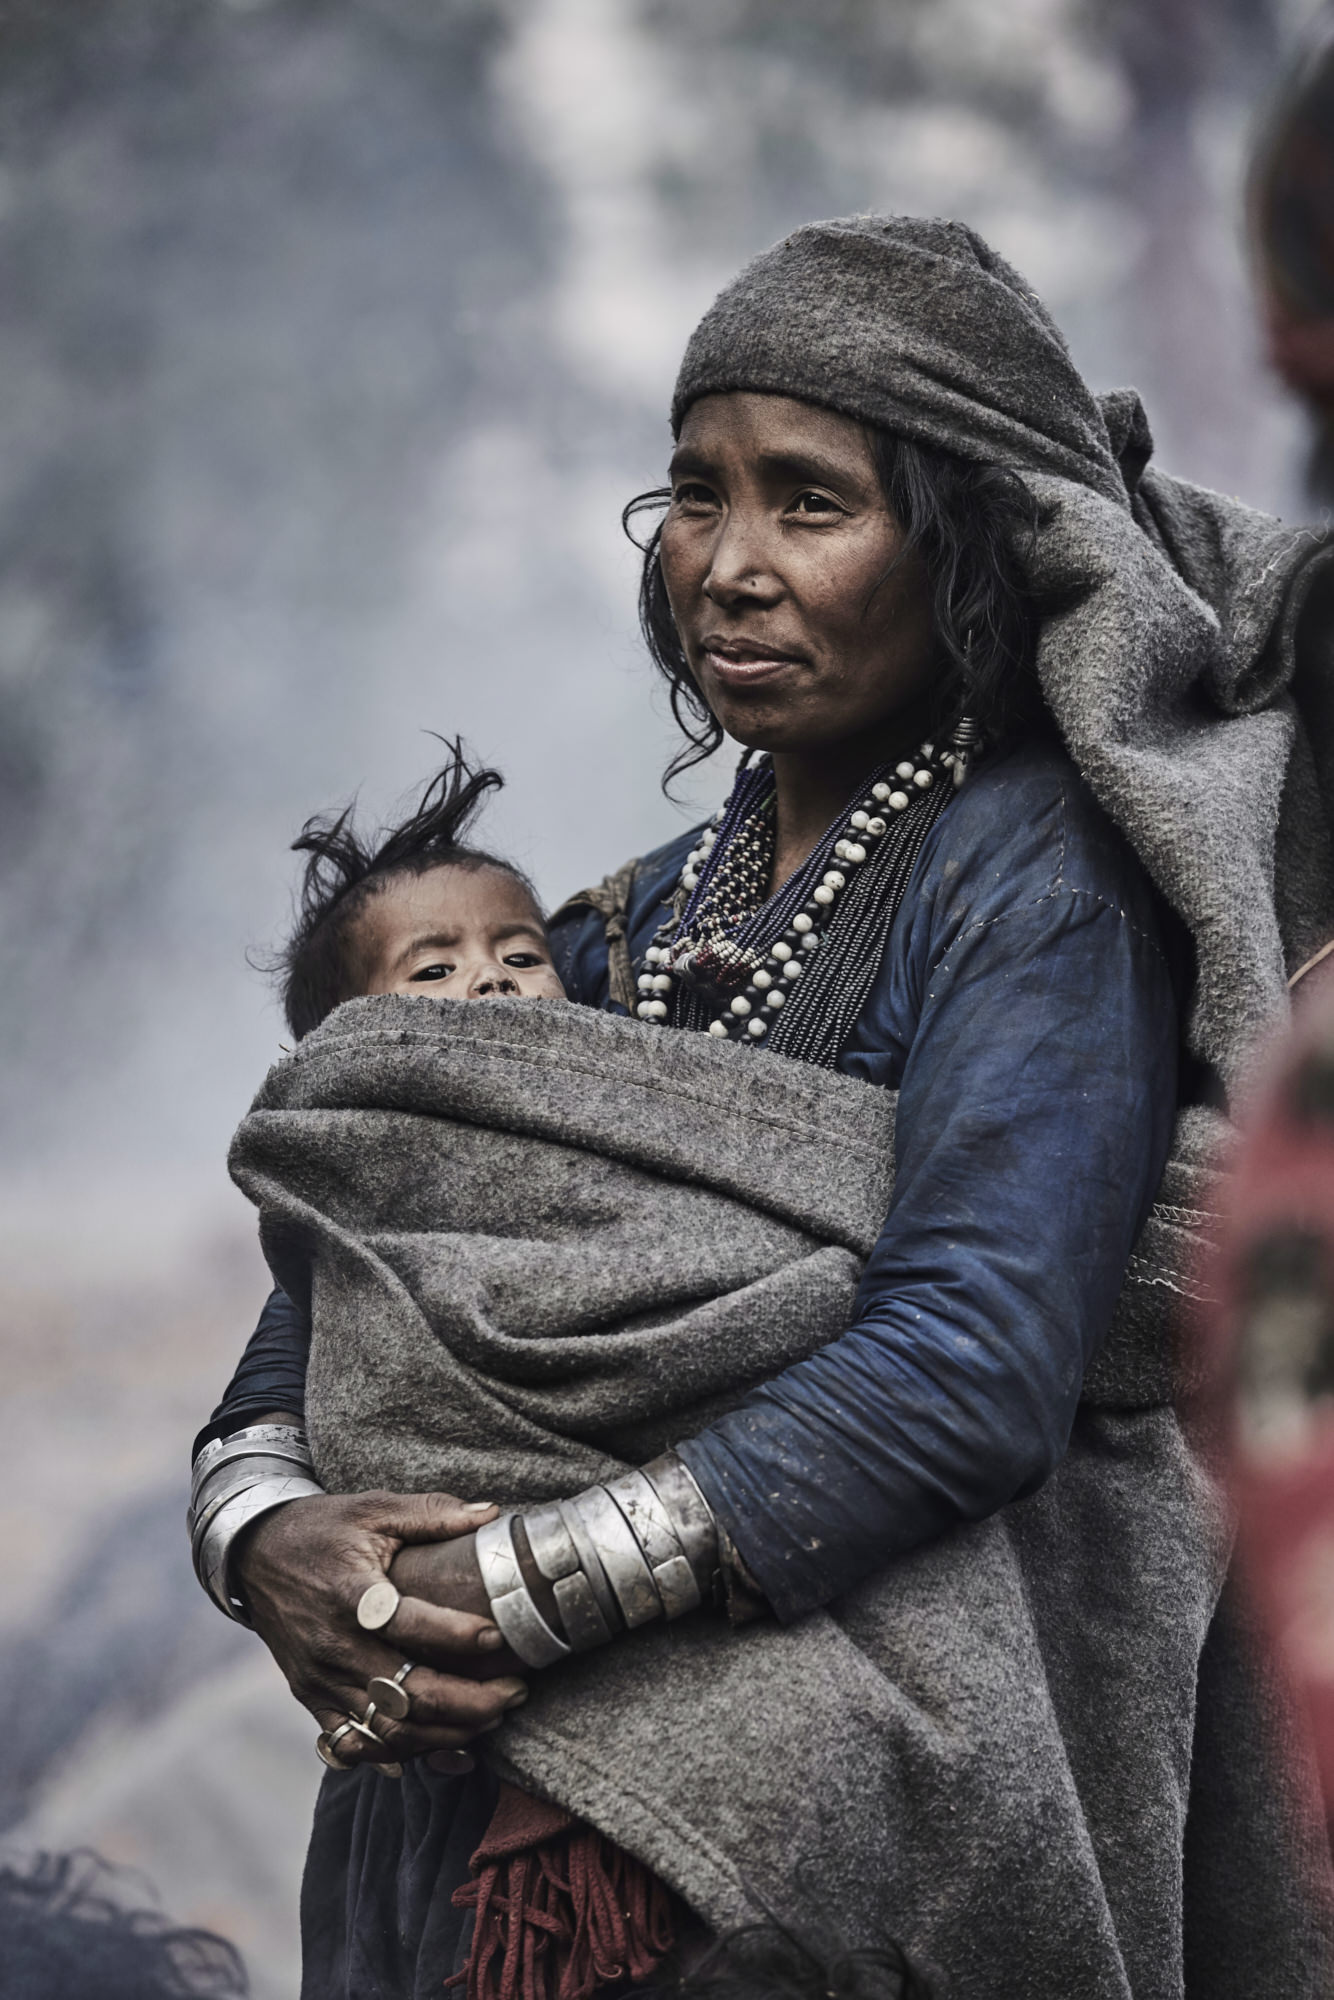 Photo project about the last hunter-gatherers of the Himalayas